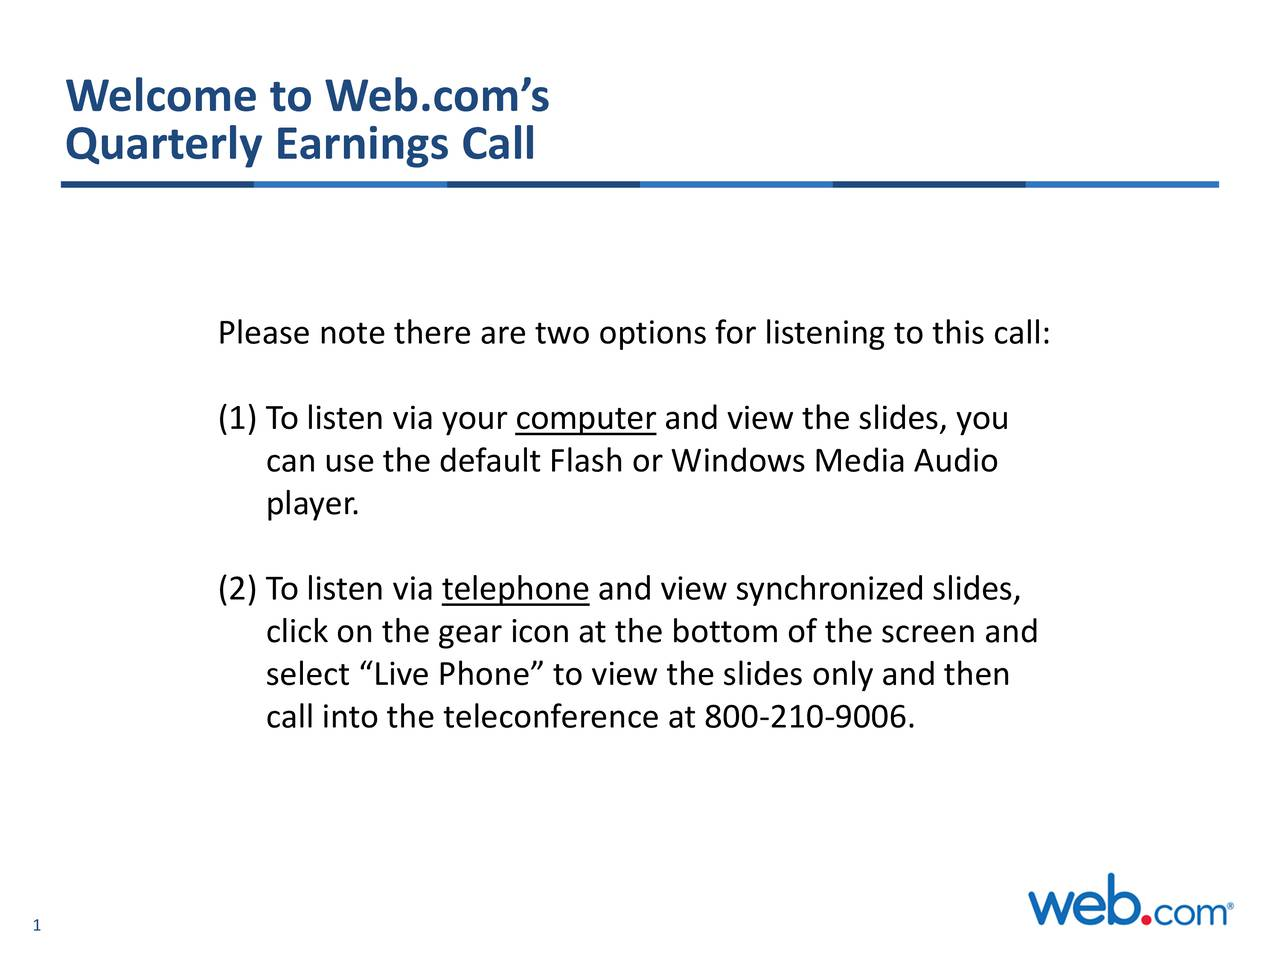 Quarterly Earnings Call Please note there are two options for listening to this call: (1) To listen via your computer and view the slides, you can use the default Flash or Windows Media Audio player. (2) To listen via telephone and view synchronized slides, click on the gear icon at the bottom of the screen and select Live Phone to view the slides only and then call into the teleconference at 800-210-9006. 1